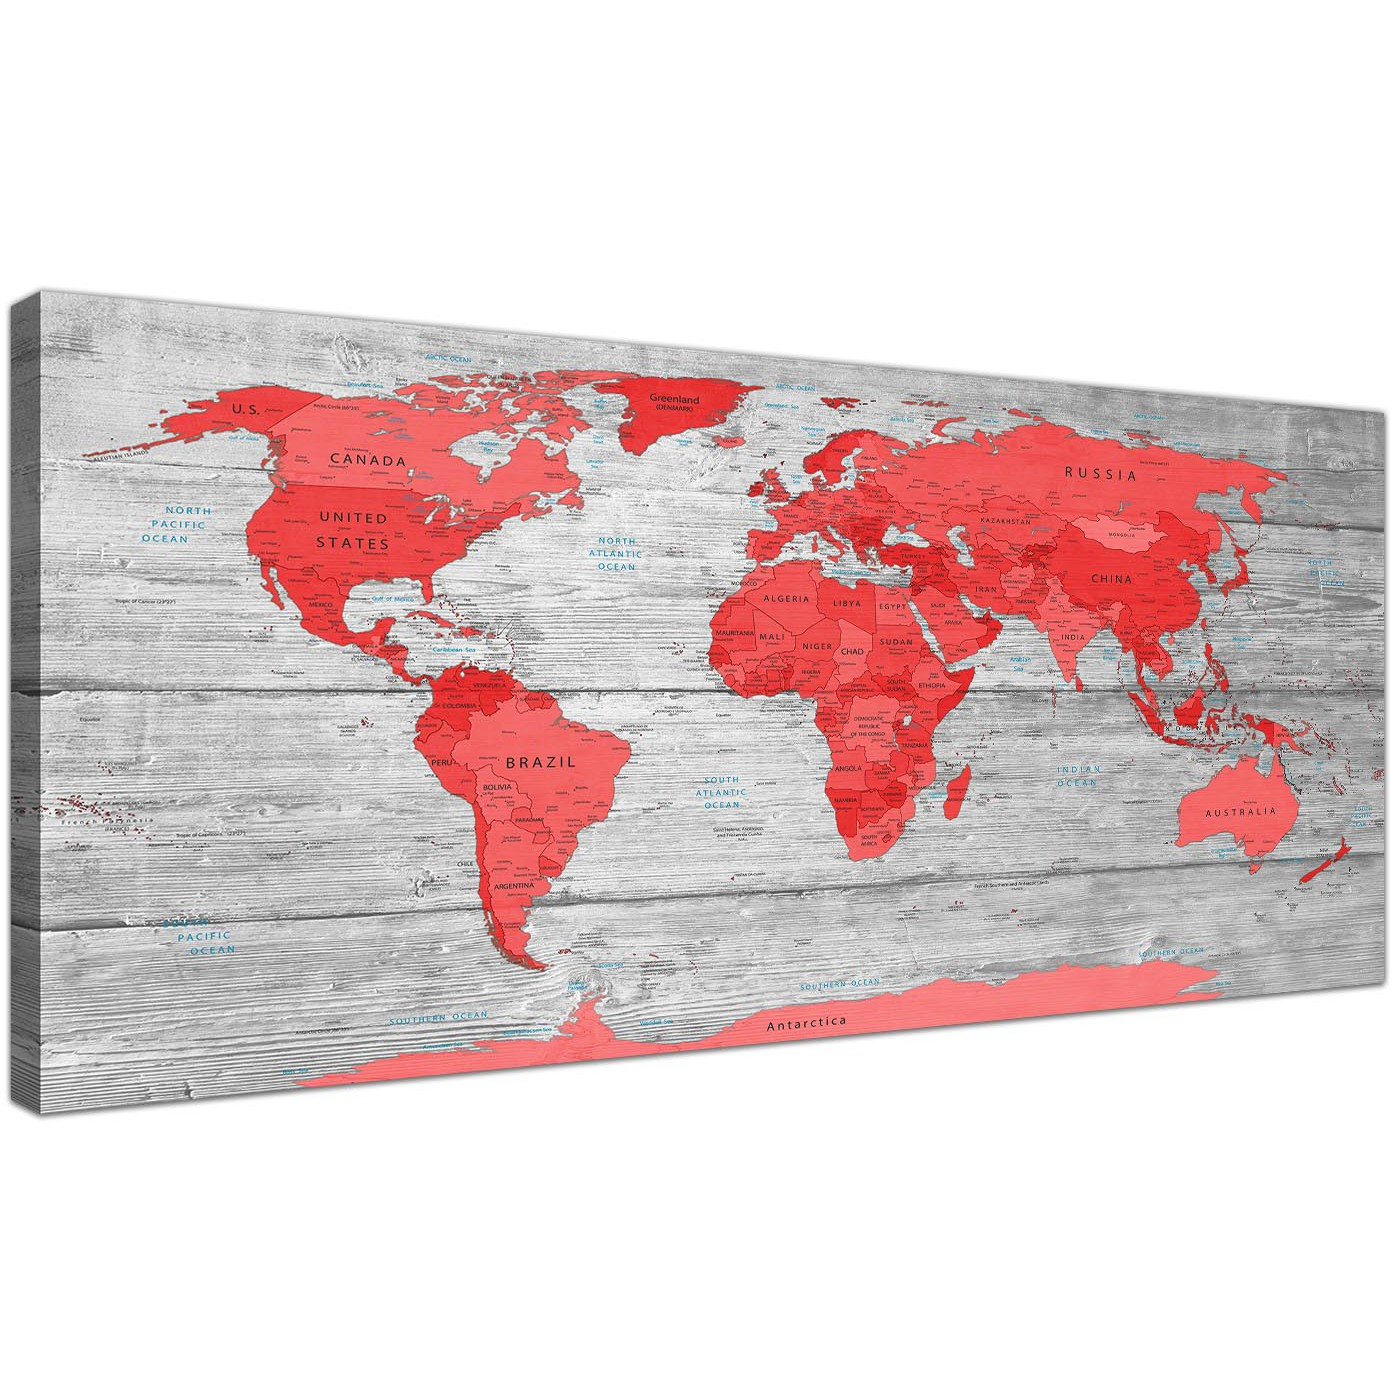 Attirant Oversized Large Red Grey Map Of The World Atlas Canvas Wall Art Print  Modern 120cm Wide Display Gallery Item 1 ...